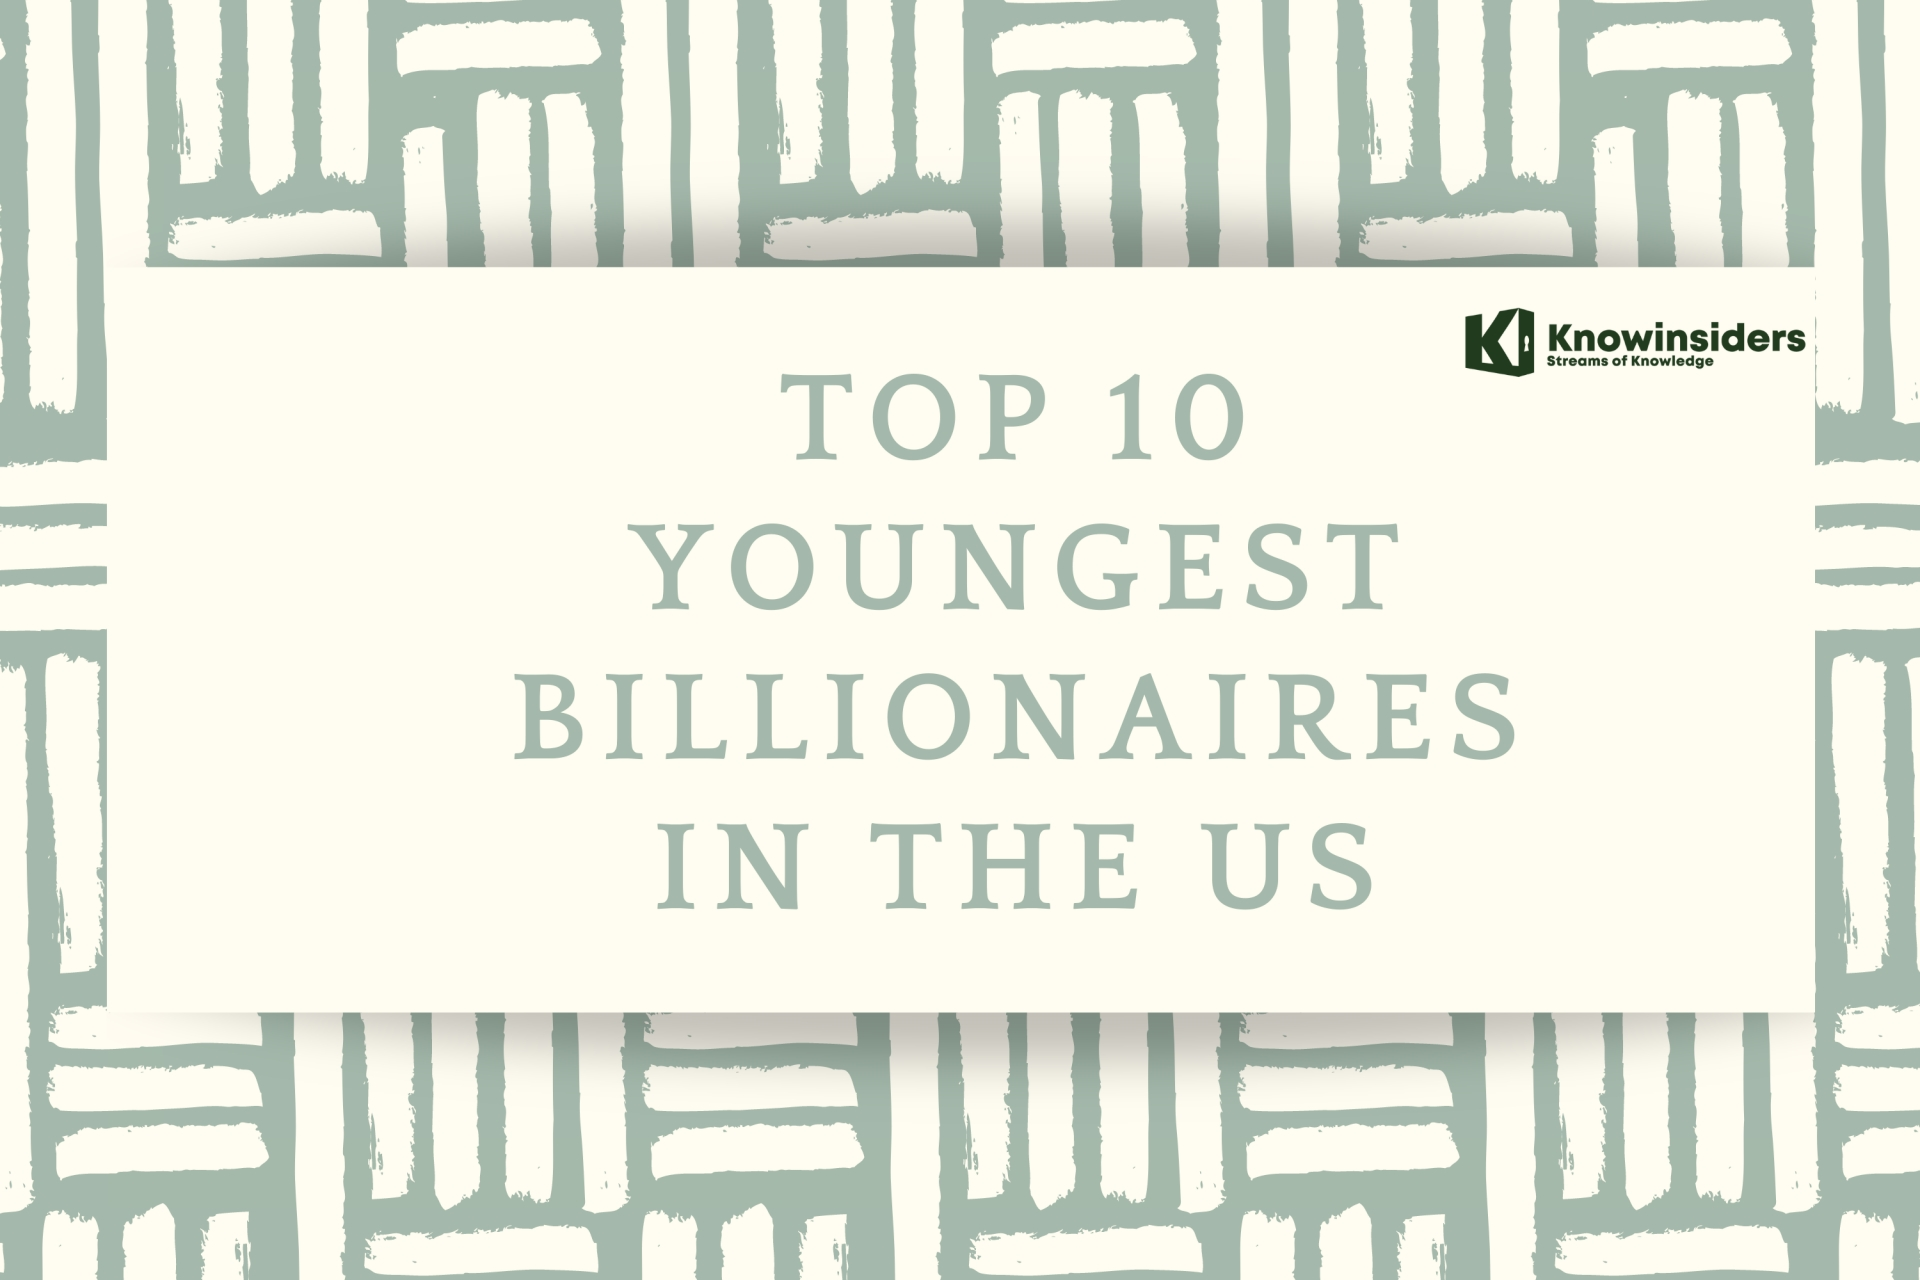 Top 10 Youngest Billionaires In The US for 2022